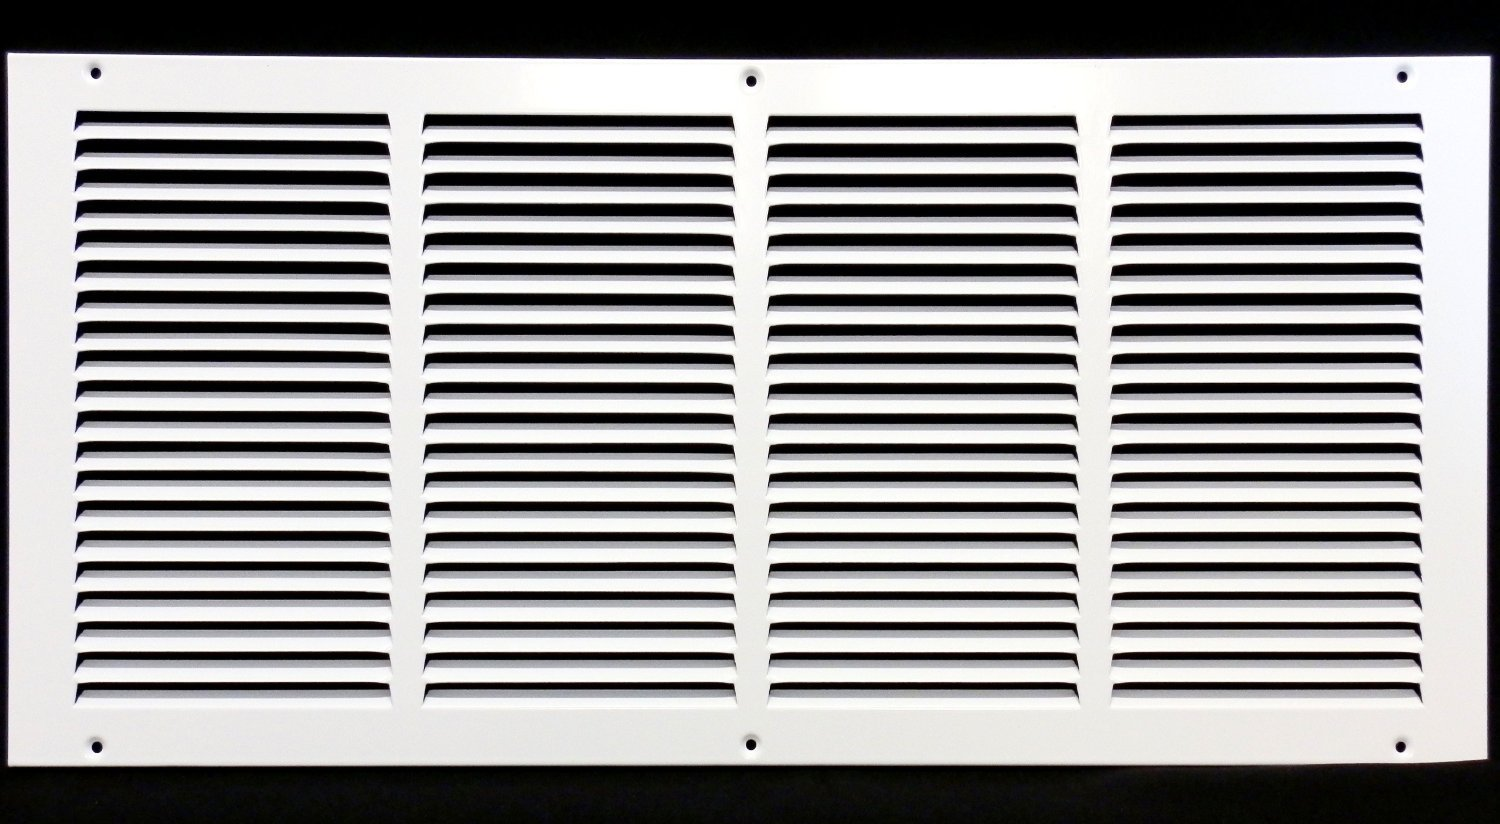 24''w X 12''h Steel Return Air Grilles - Sidewall and Cieling - HVAC DUCT COVER - White [Outer Dimensions: 25.75''w X 13.75''h]